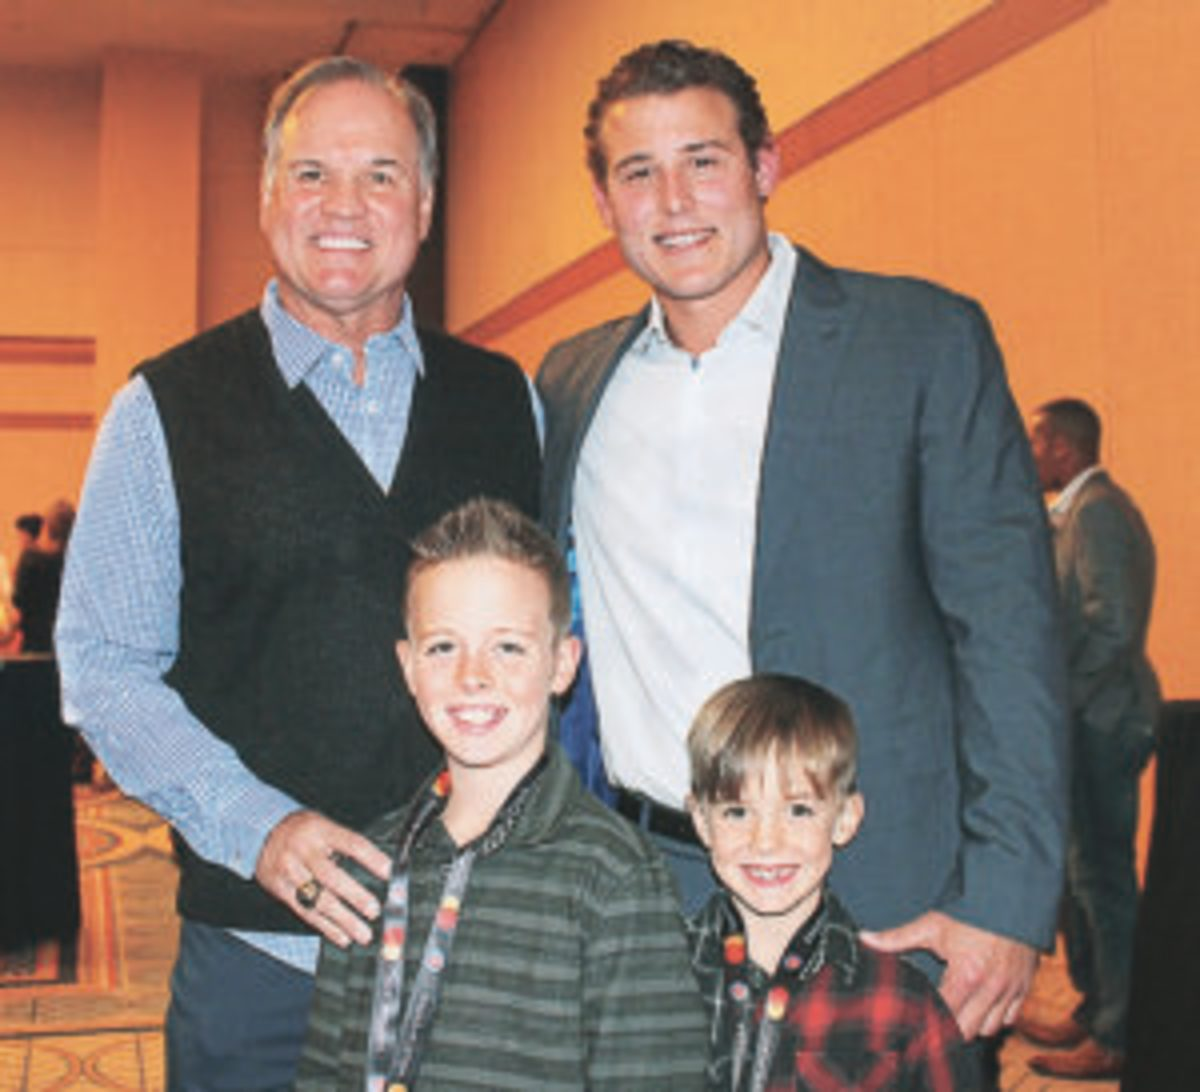 Former Cubs player Ryne Sandberg (left) and current Cubs player Anthony Rizzo pose for a photo with Sandberg's grandsons.